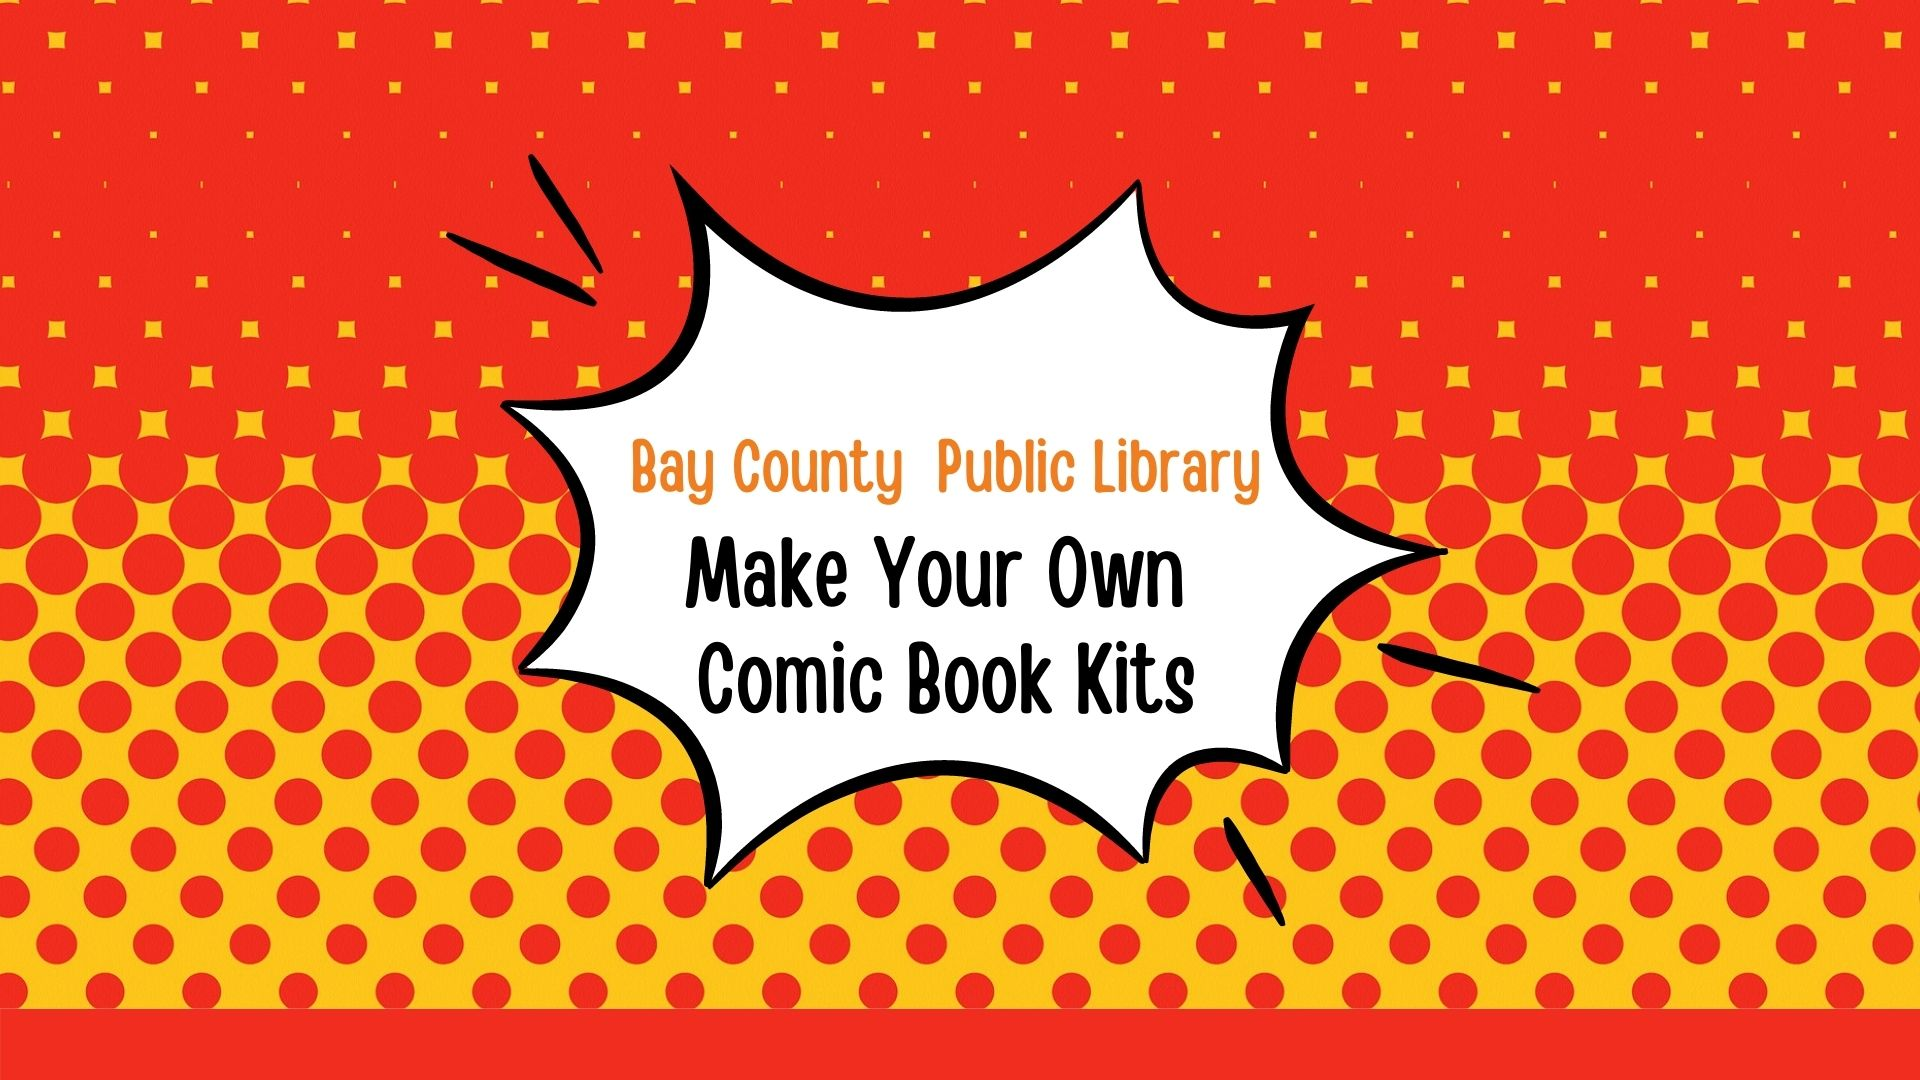 Make Your Own Comic Book Kits